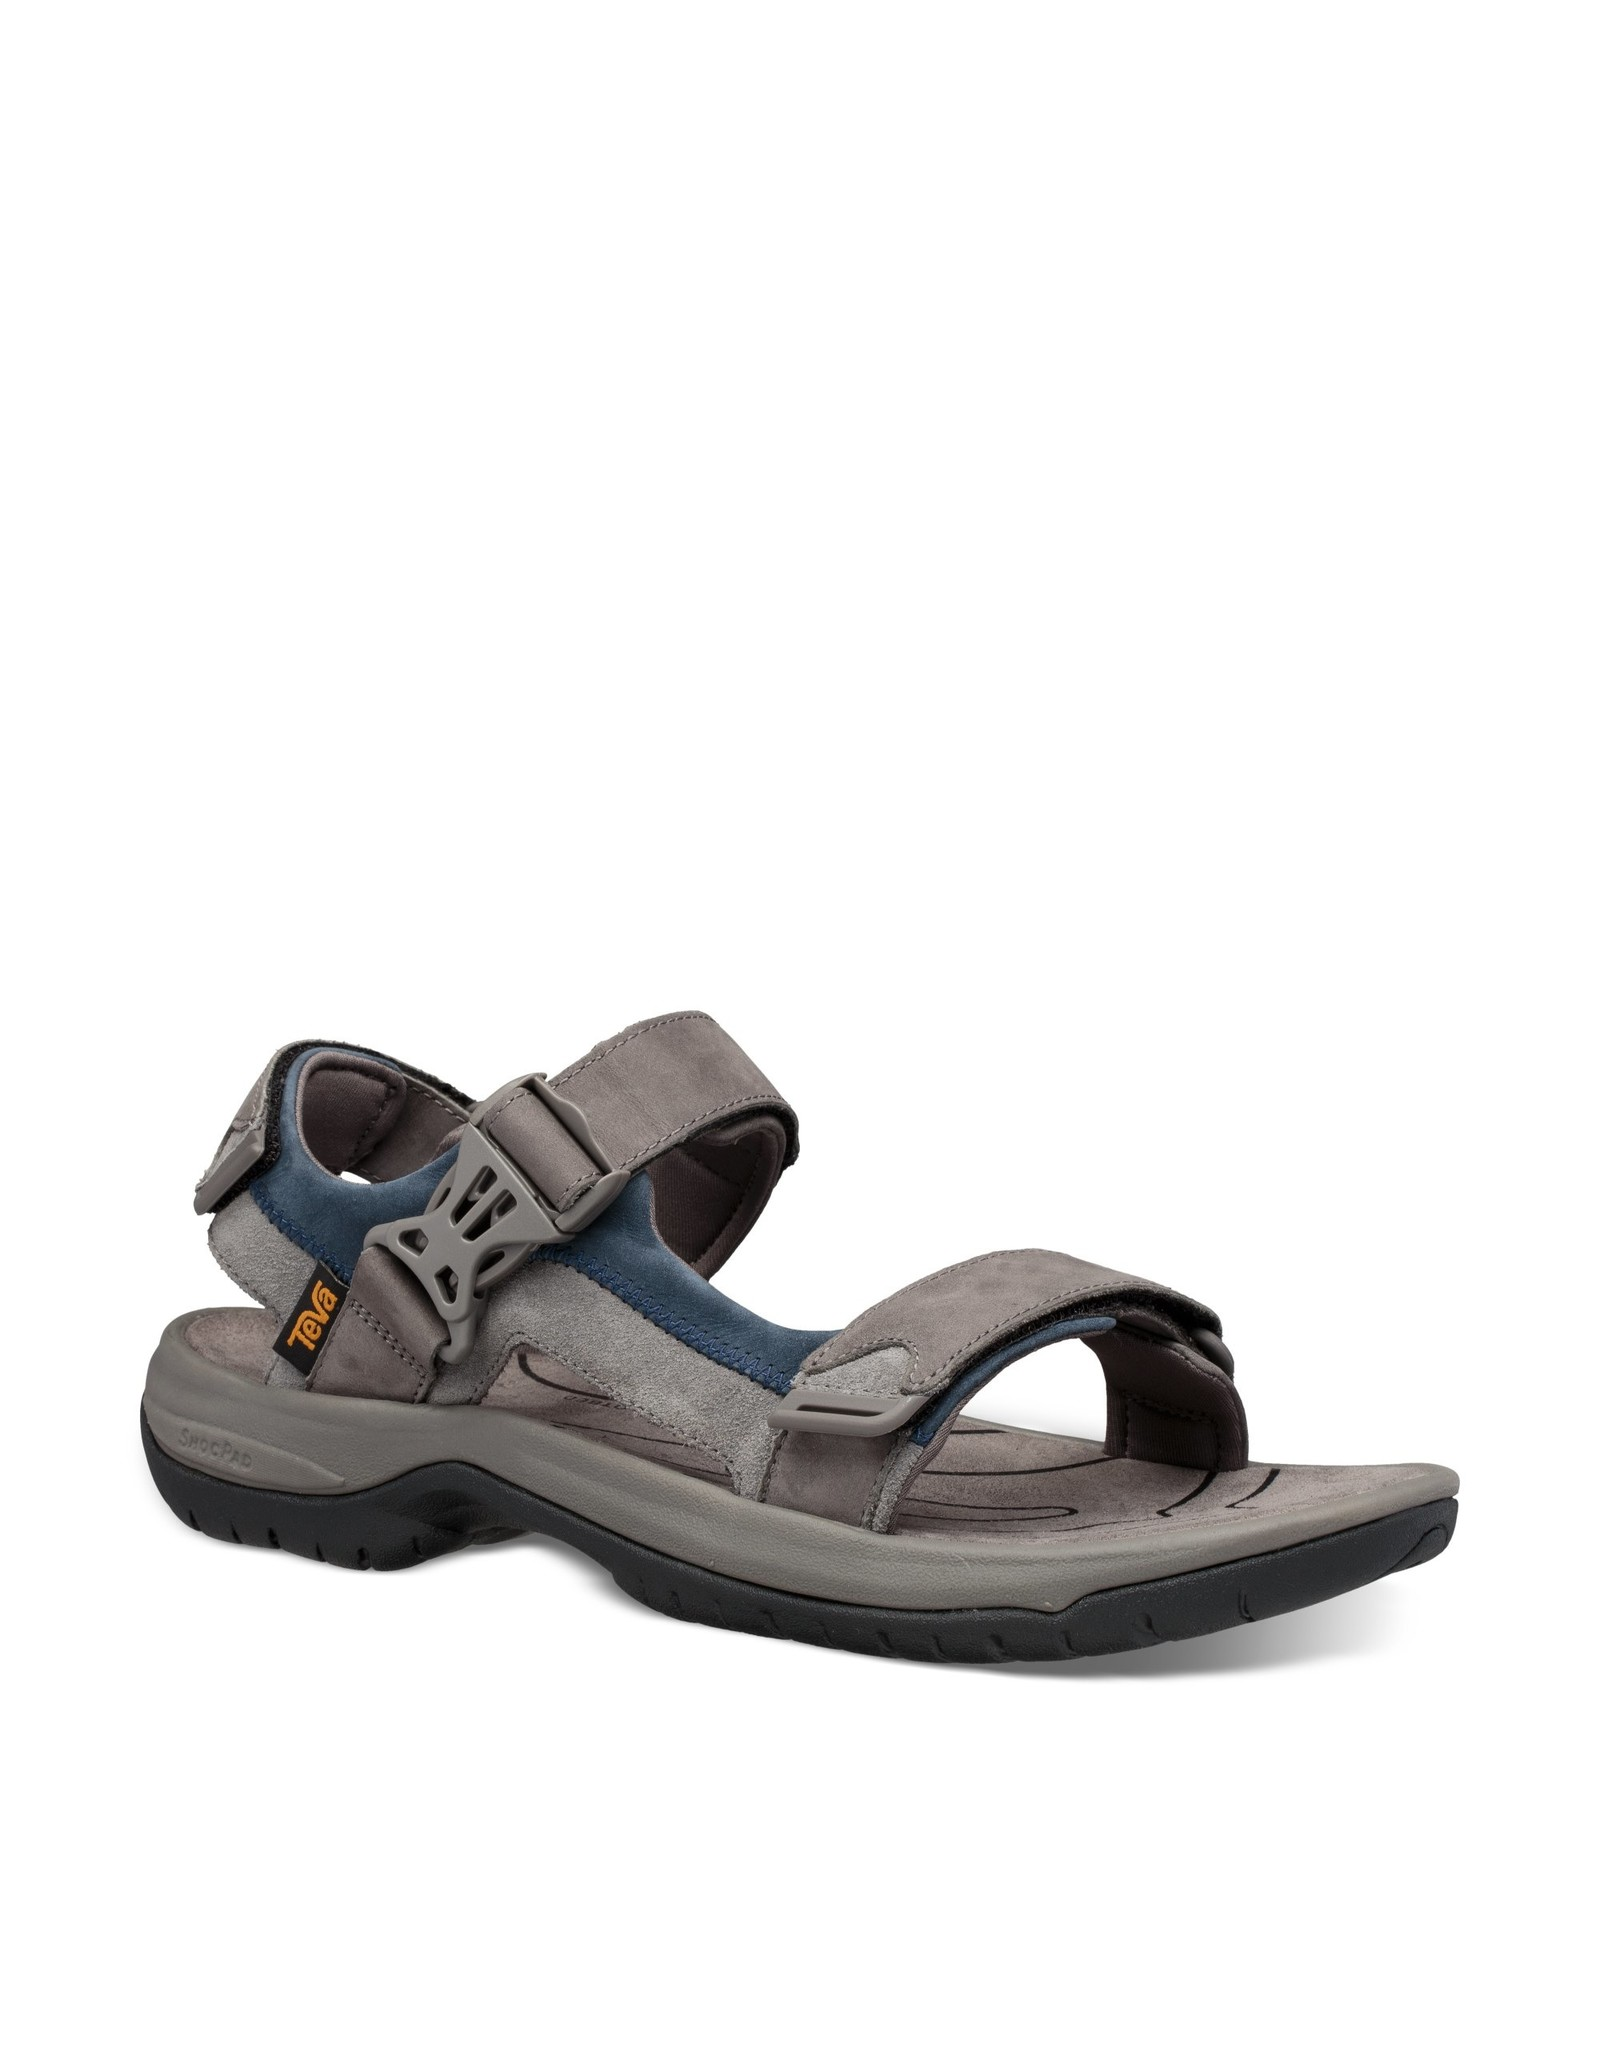 Teva Men's Tanaway leather - 20ps